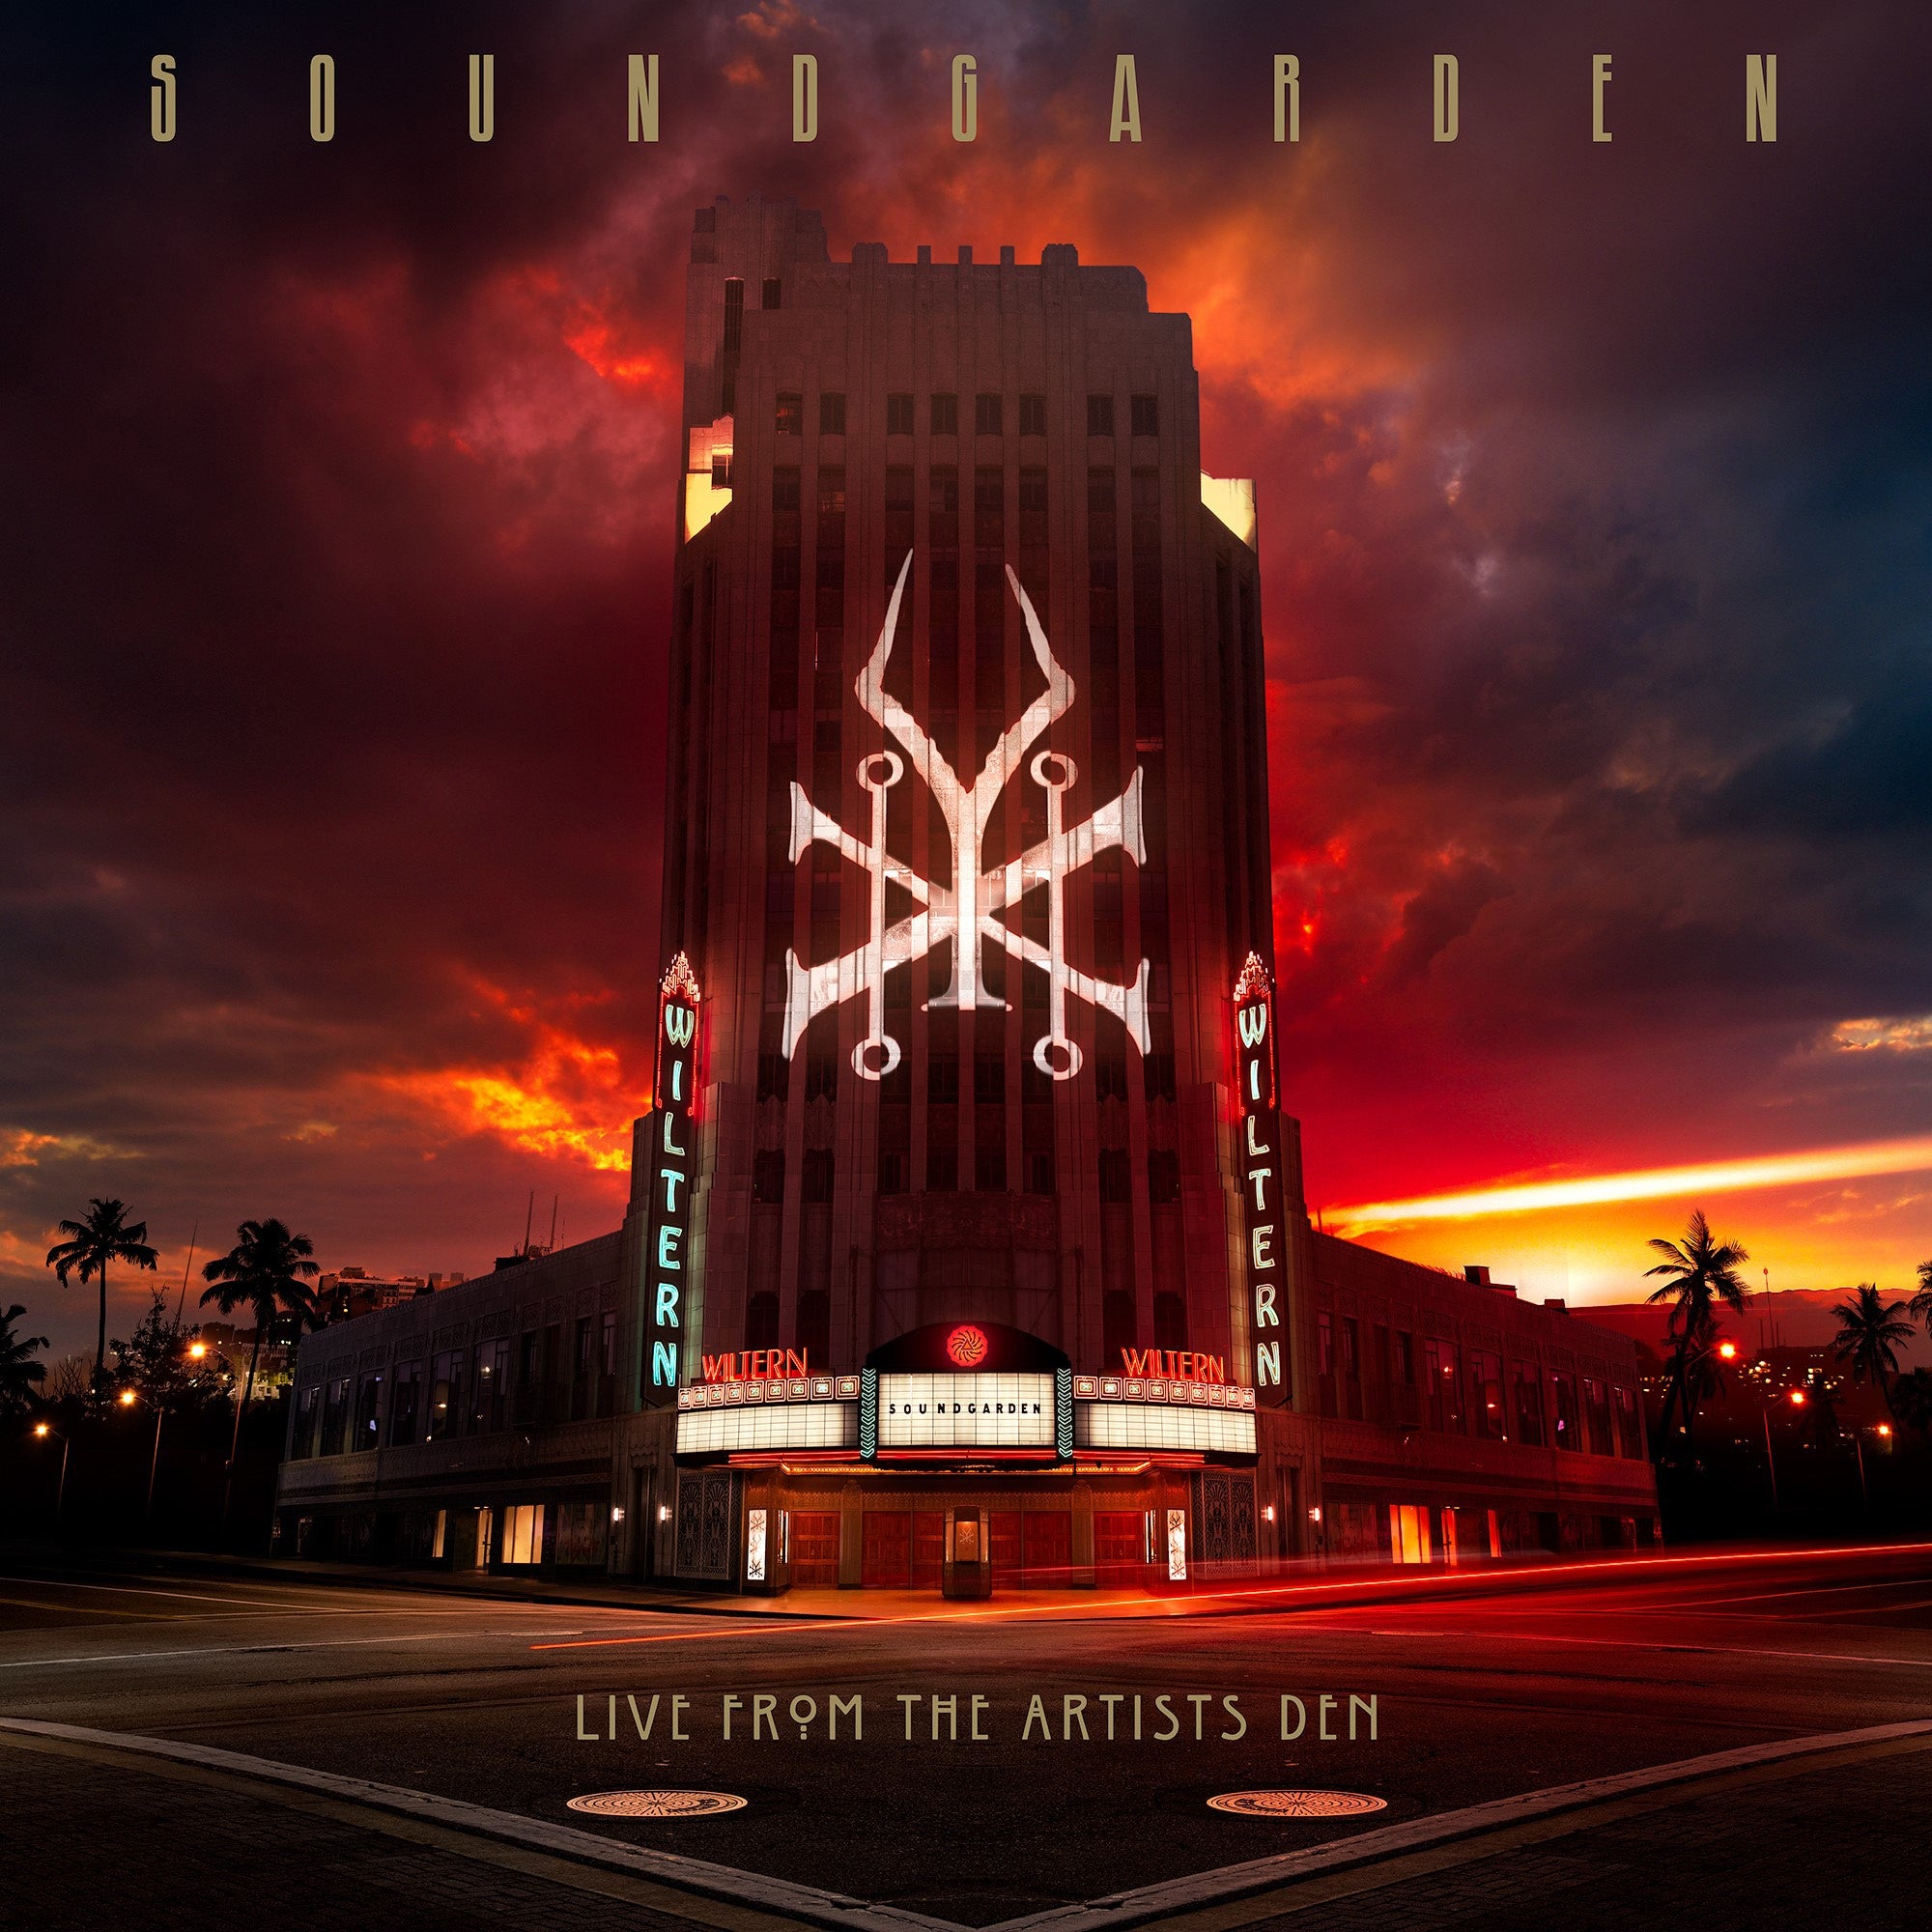 Soundgarden — Live From The Artists Den - New 4 Lp Record 2019 180Gram Vinyl Deluxe Edition with 2 CD and Blu-Ray - Grunge/Alt Rock